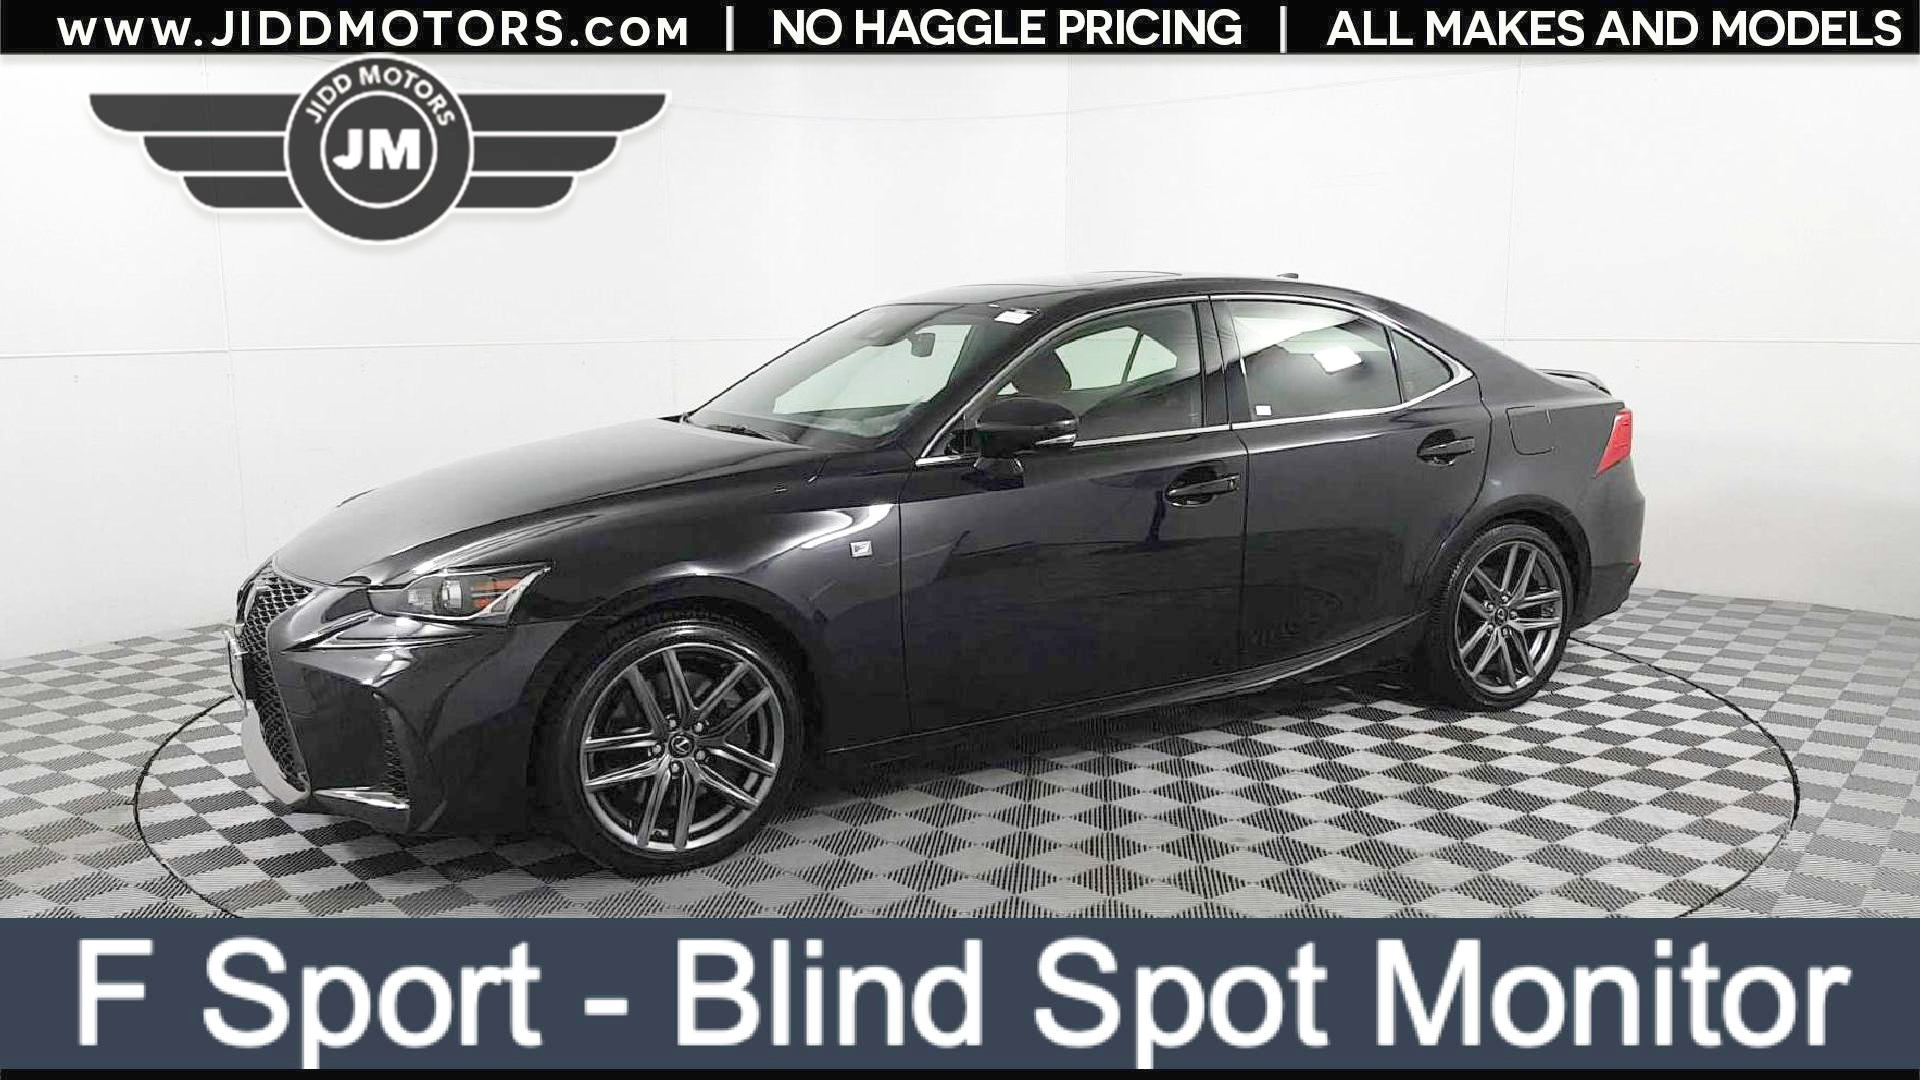 2017 Lexus IS 300 F-Sport